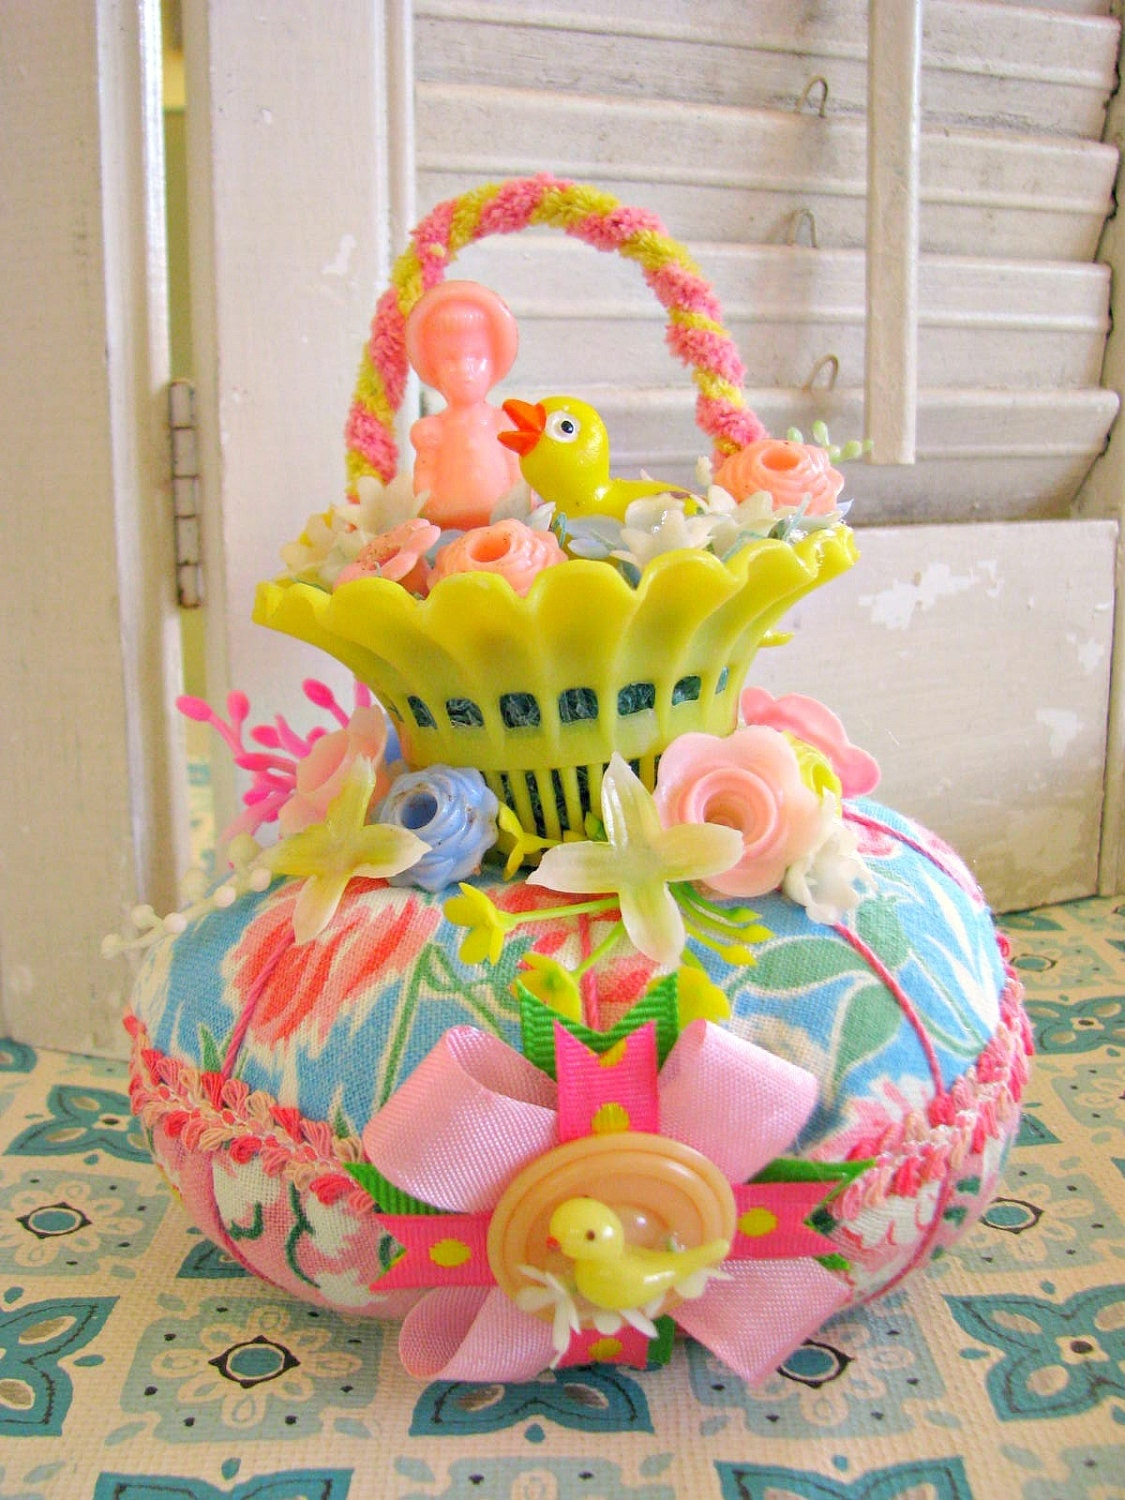 Vintage Easter Basket o Fun Pin Cushion by Bethsbagz on Etsy - photo#4